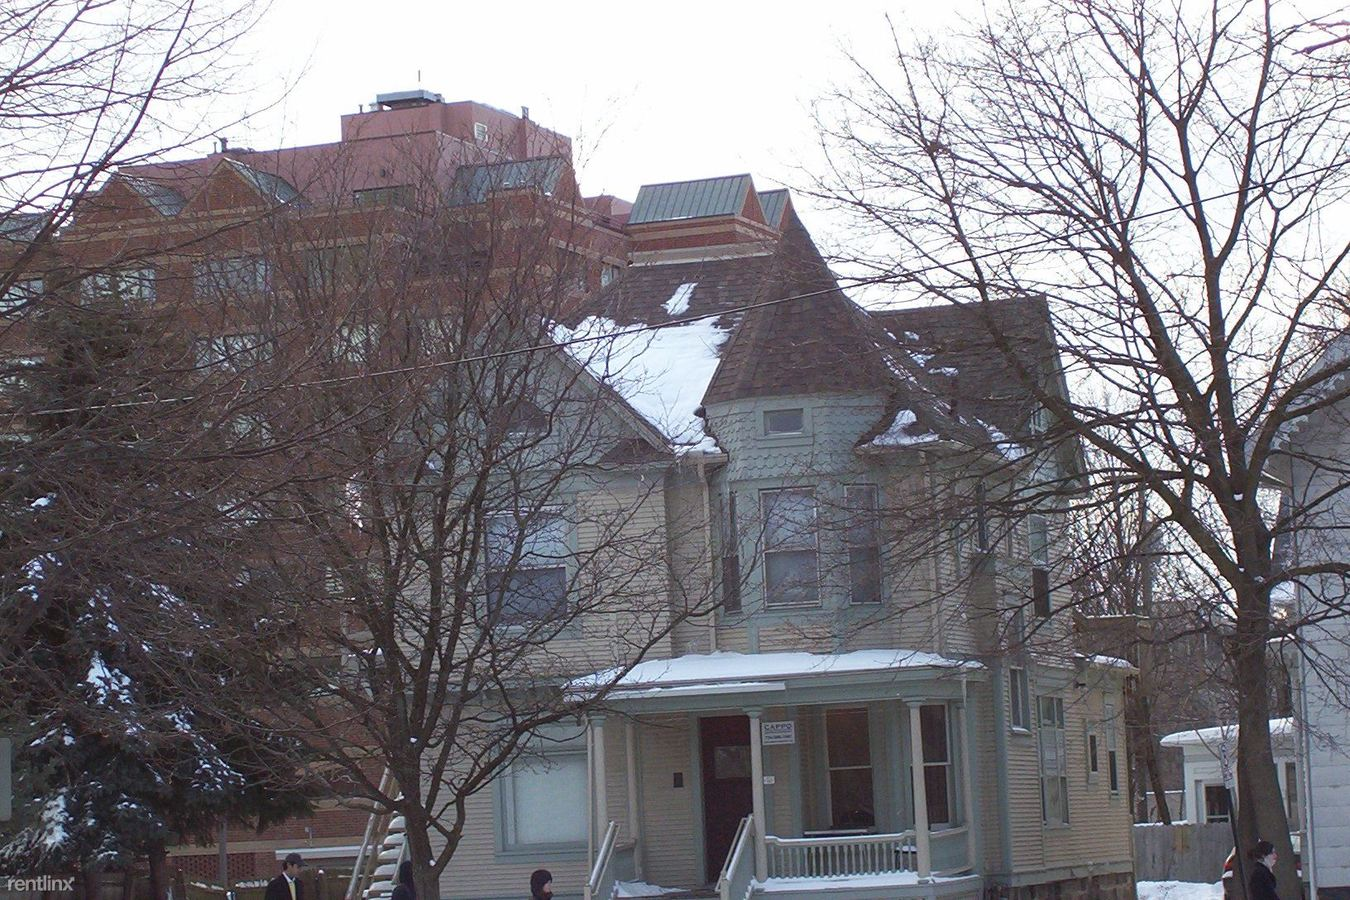 2 Bedrooms 1 Bathroom Apartment for rent at 123 N State St in Ann Arbor, MI